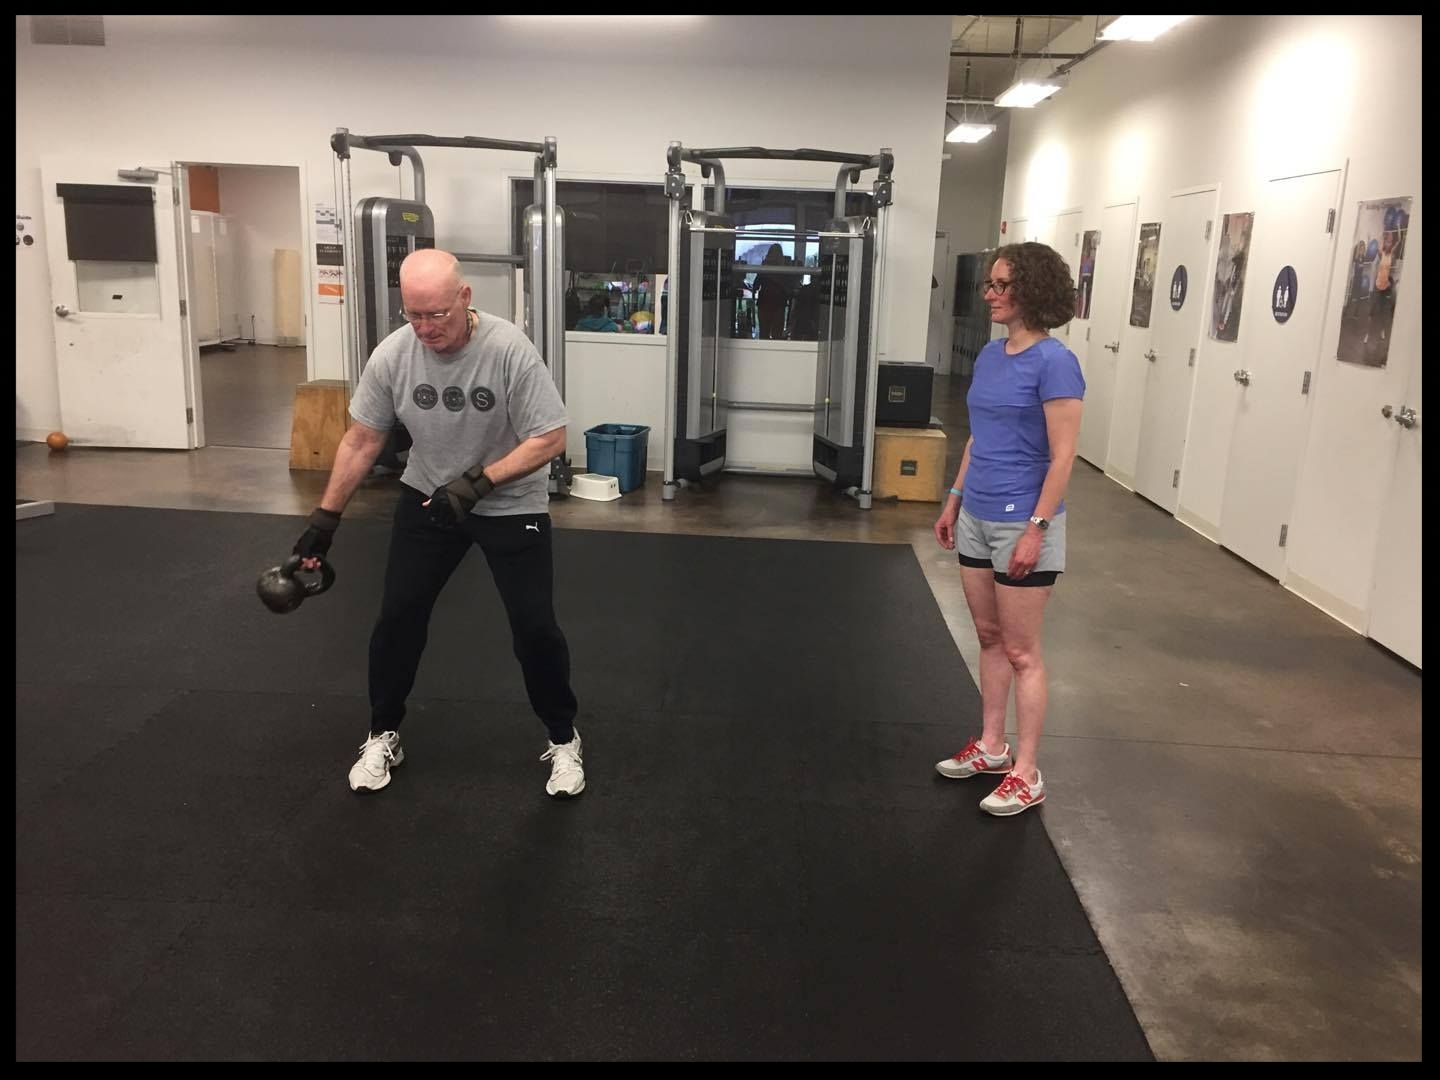 Leo swings a kettle bell while Rachel waits for her turn